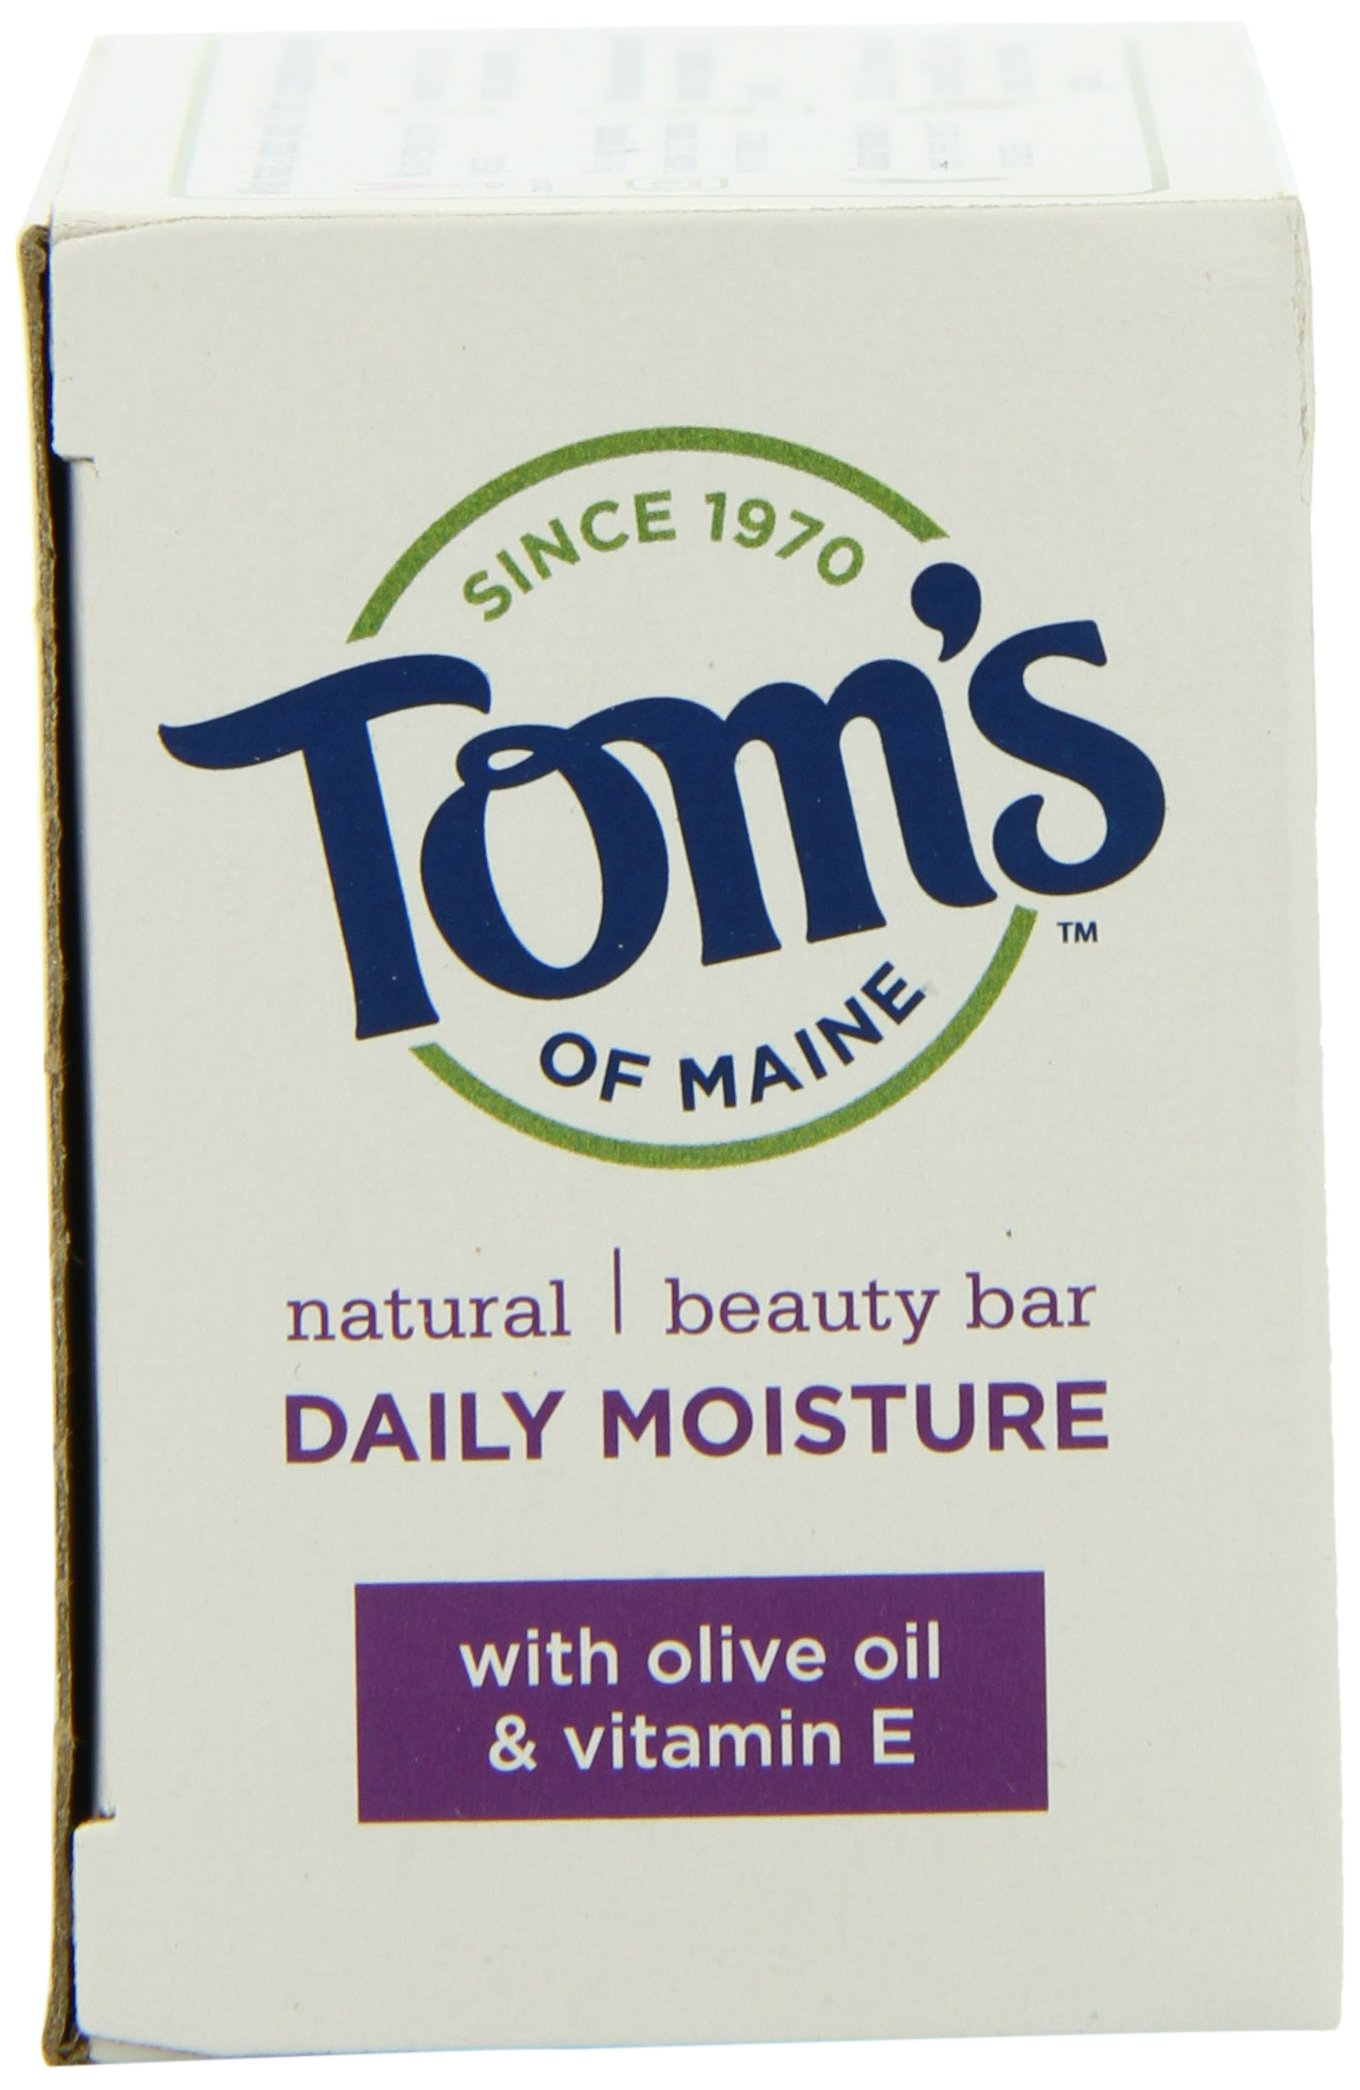 Tom's of Maine Moisturizing Bar Daily, 4-Ounce Bar, Pack of 6 by Tom's of Maine (Image #12)